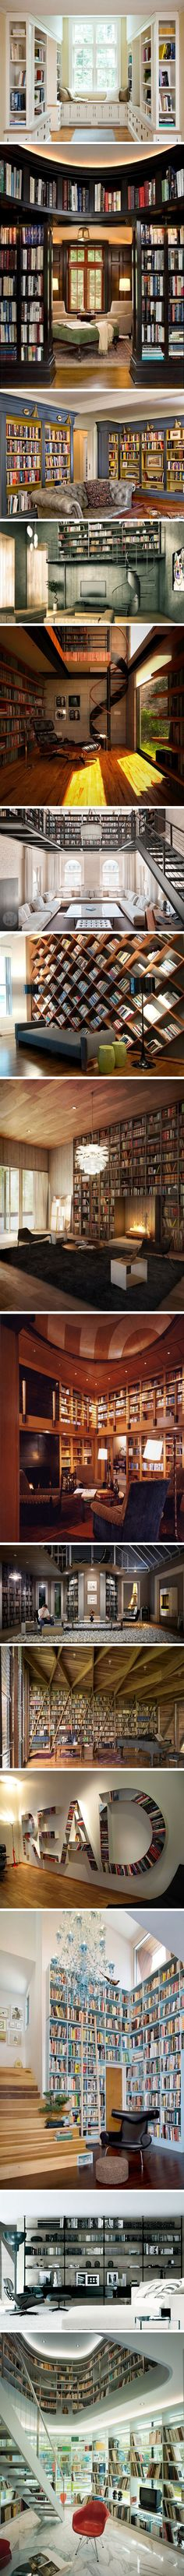 Book nooks/Library of my dreams